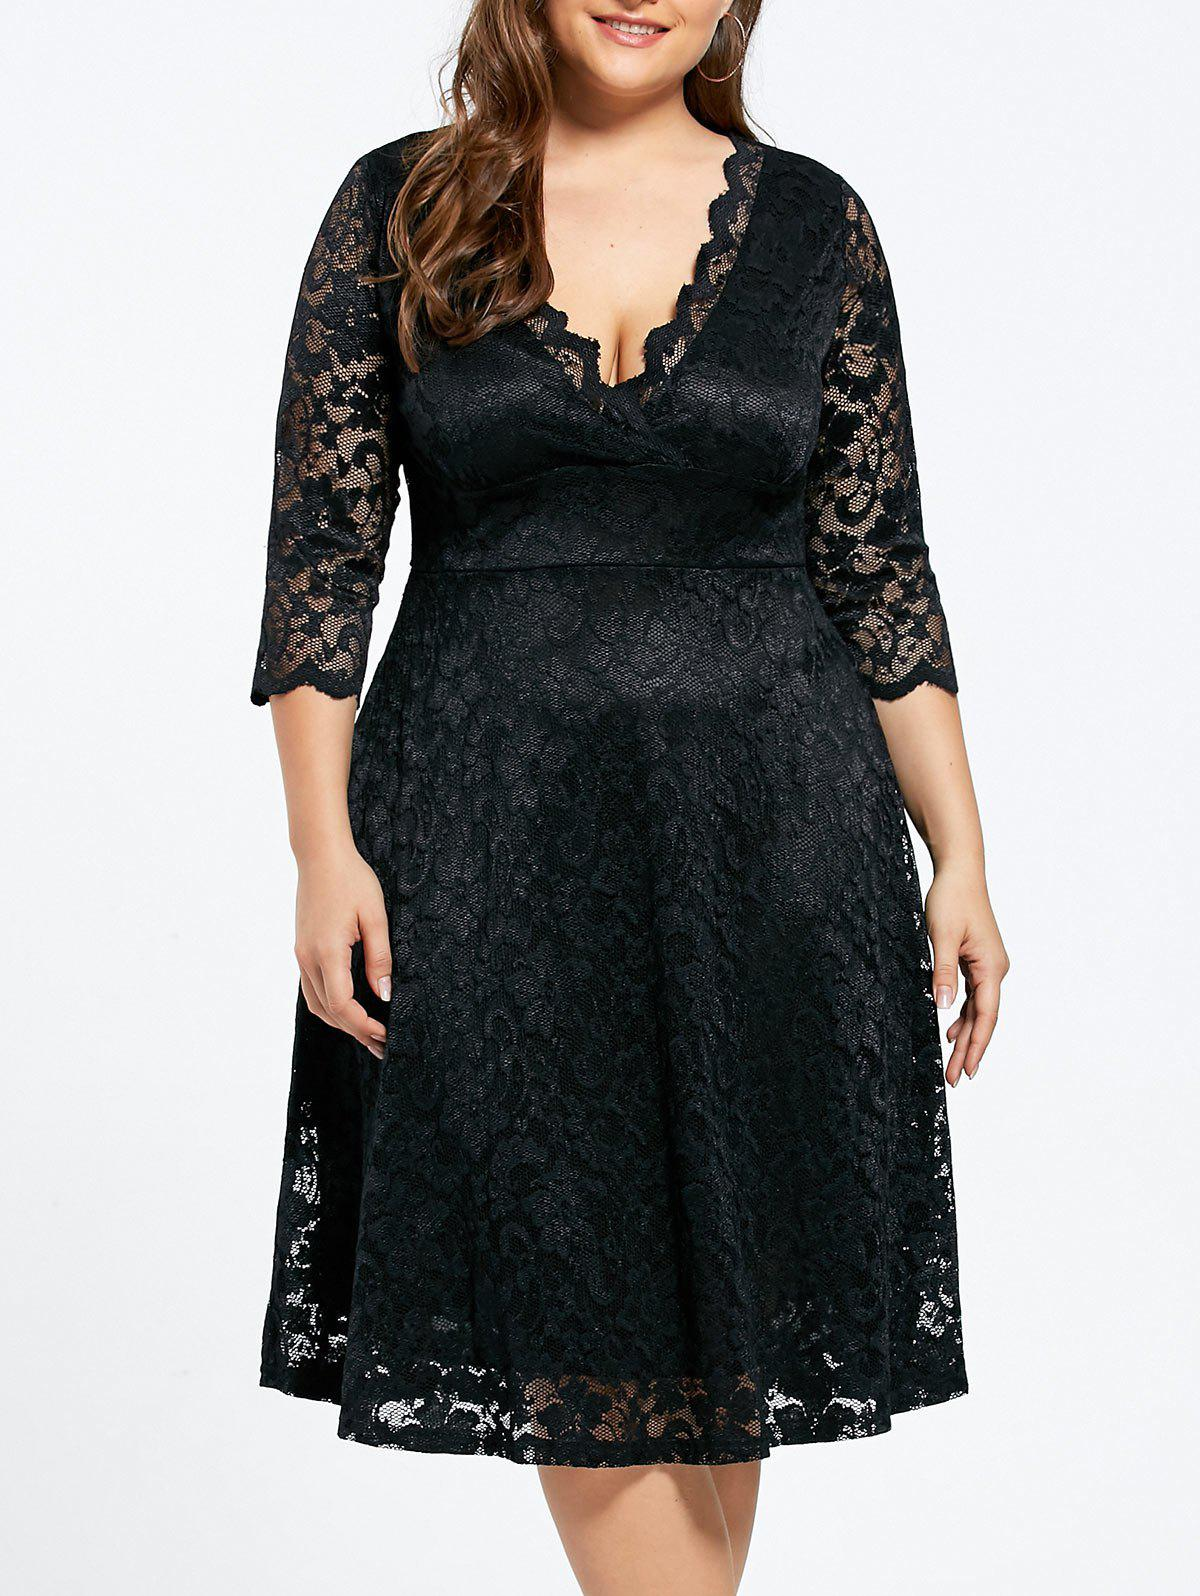 V-neck Plus Size Knee Length Formal Lace Dress - BLACK 5XL